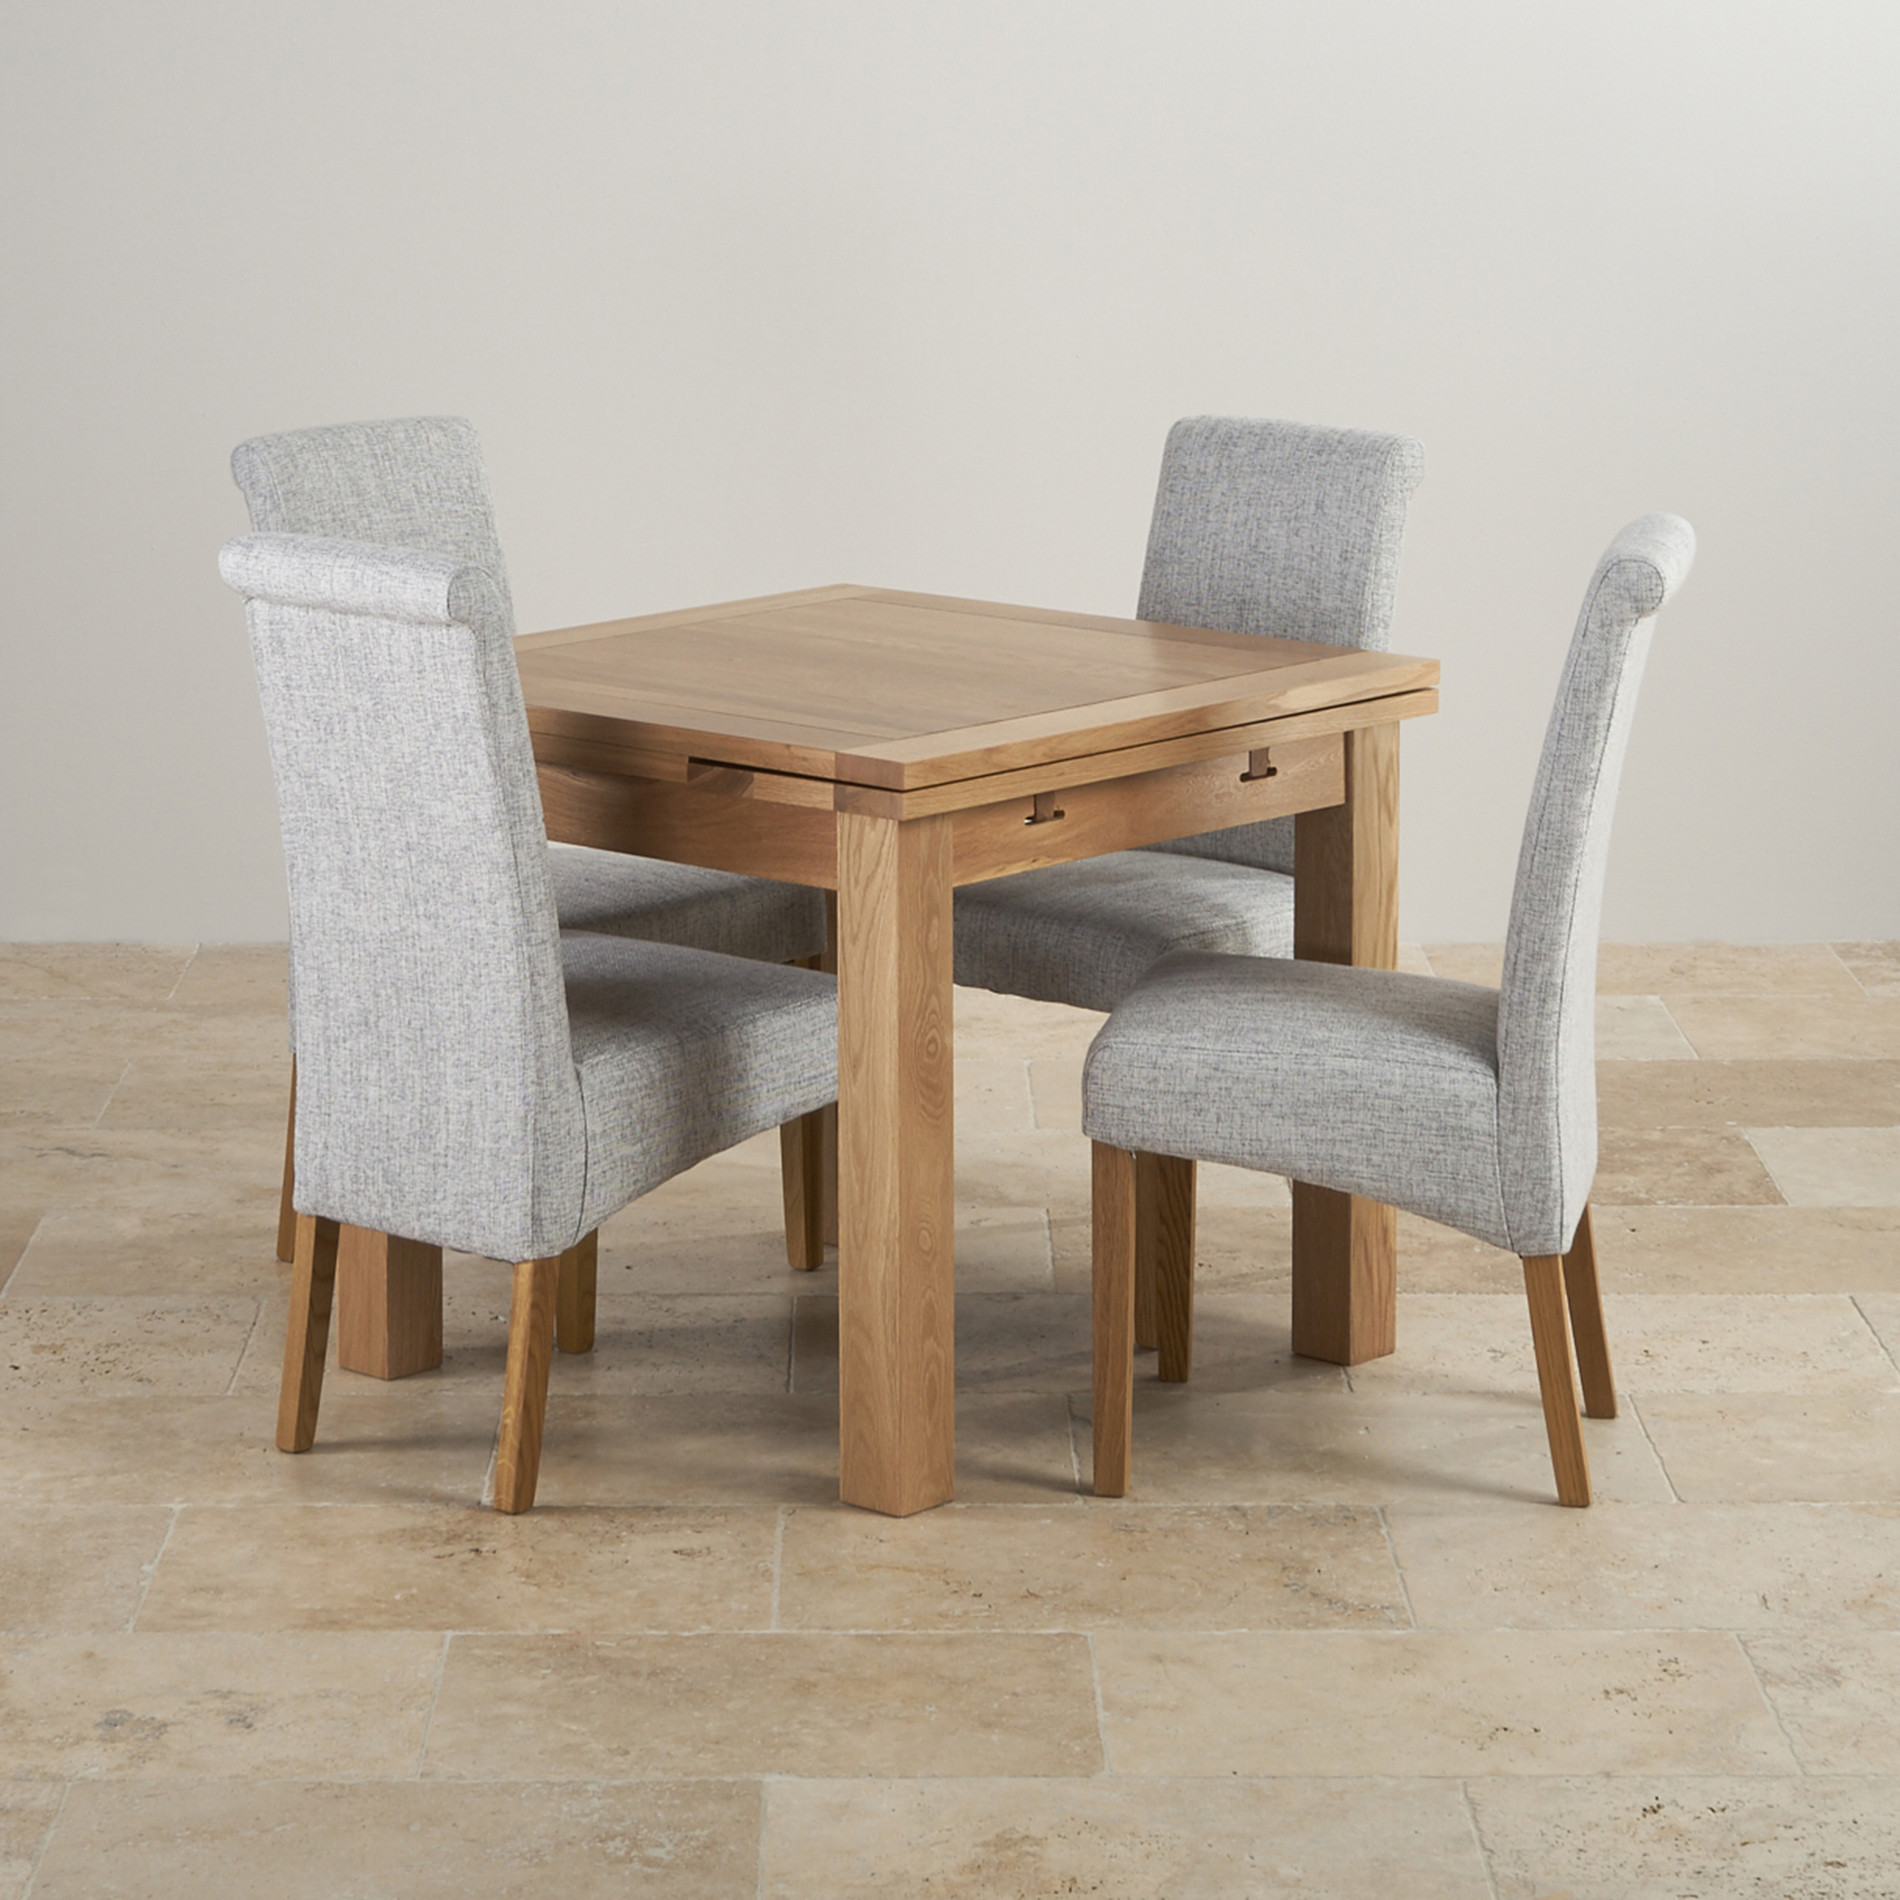 Dorset oak 3ft dining table with 4 grey fabric chairs - Dining table and fabric chairs ...